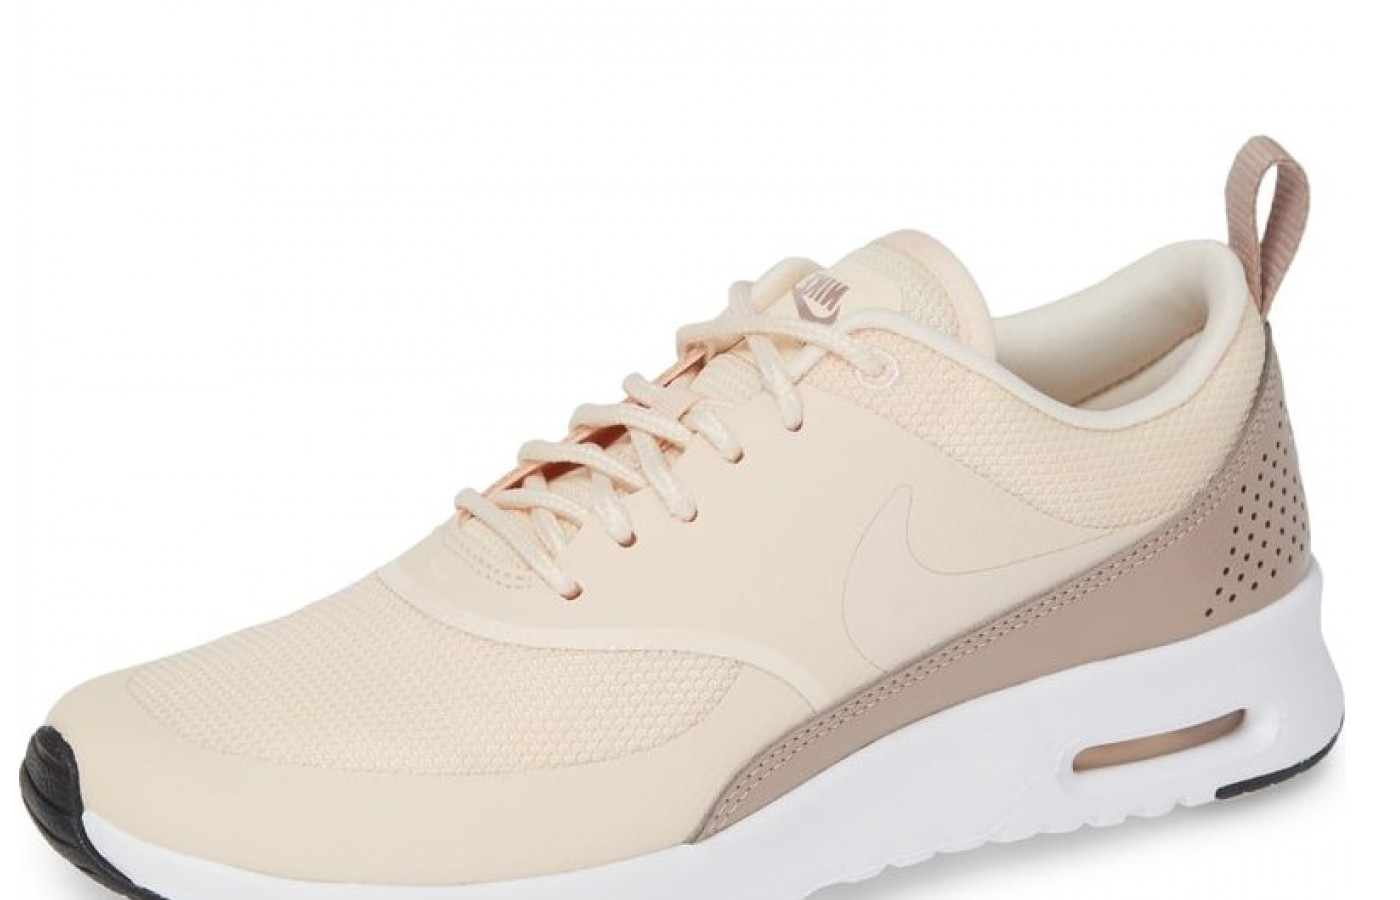 Nike Air Max Thea from front/side